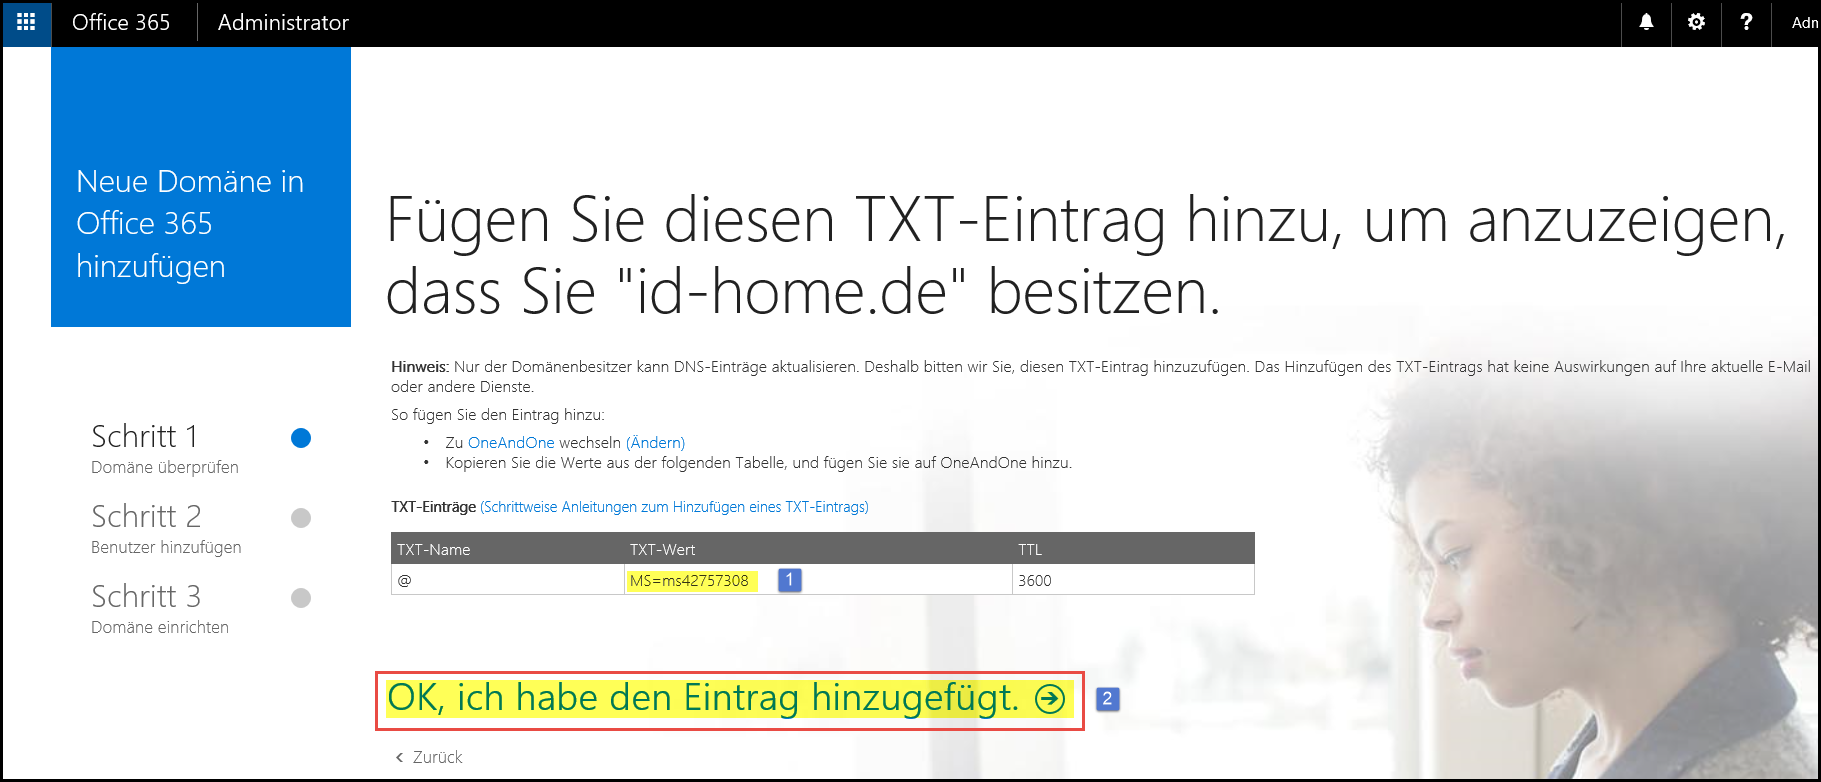 Office365_Domain_einrichten_005